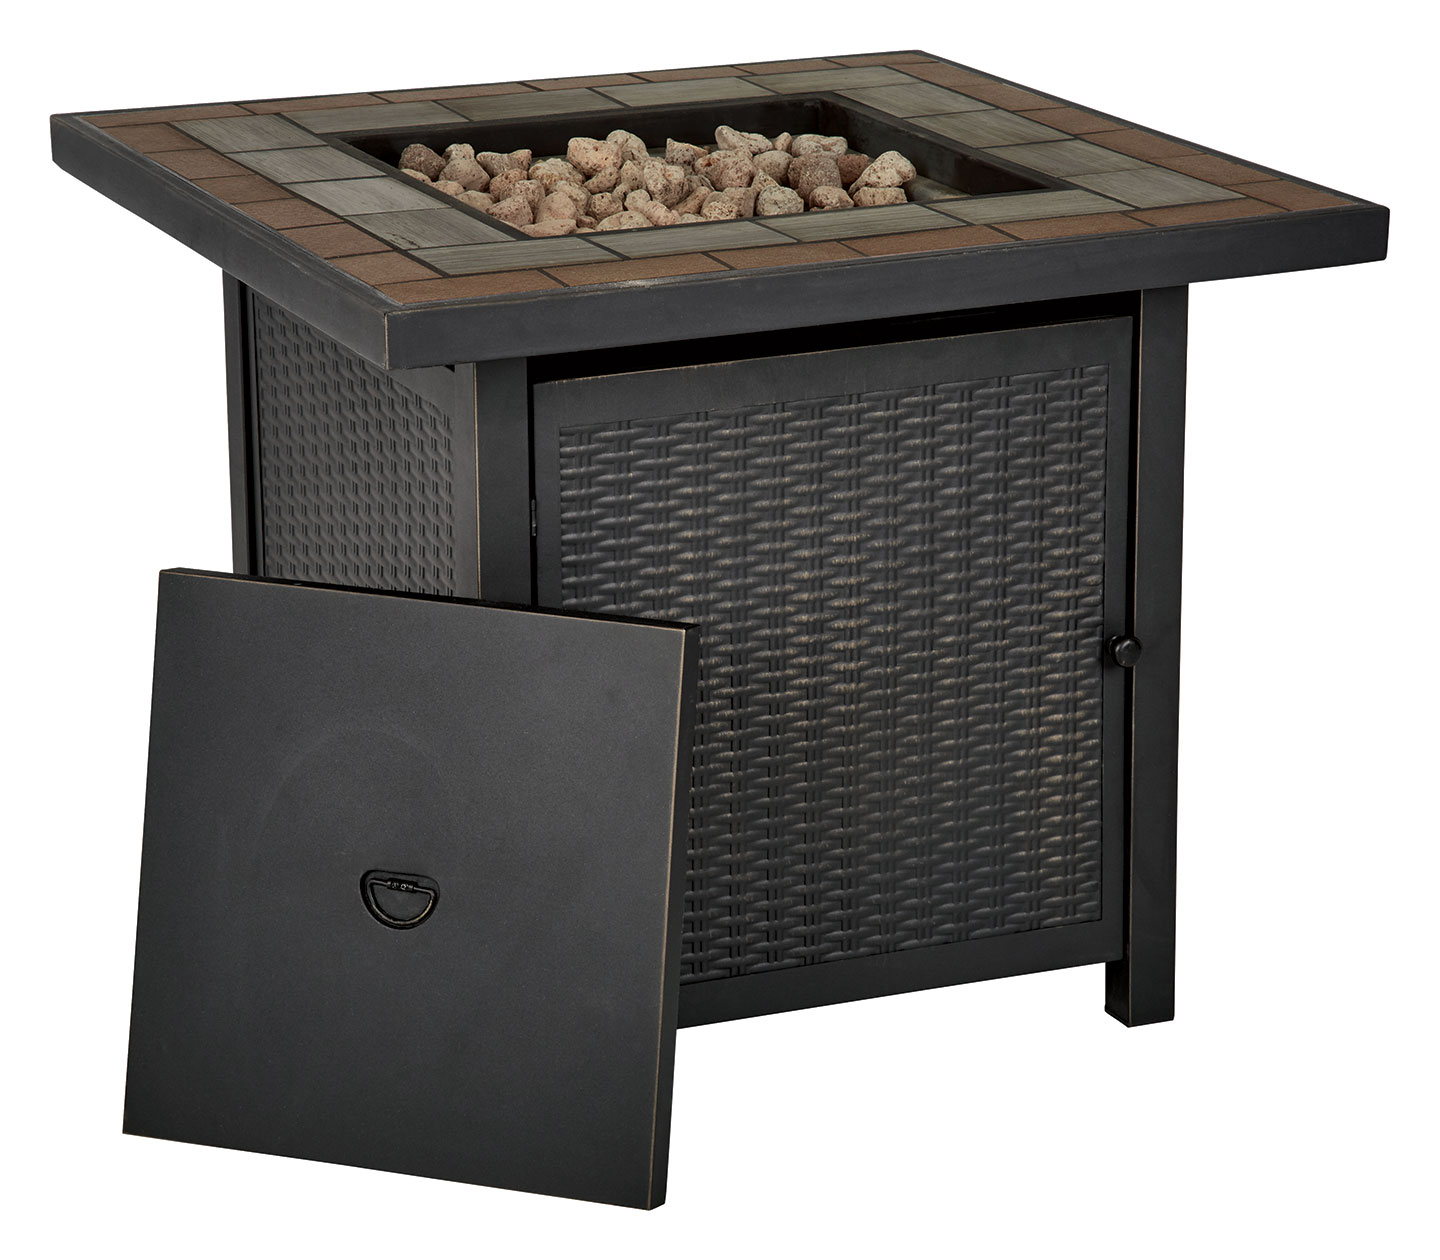 Outdoor Living - Great Lakes Ace Hardware Store on Ace Hardware Fire Pit  id=56551